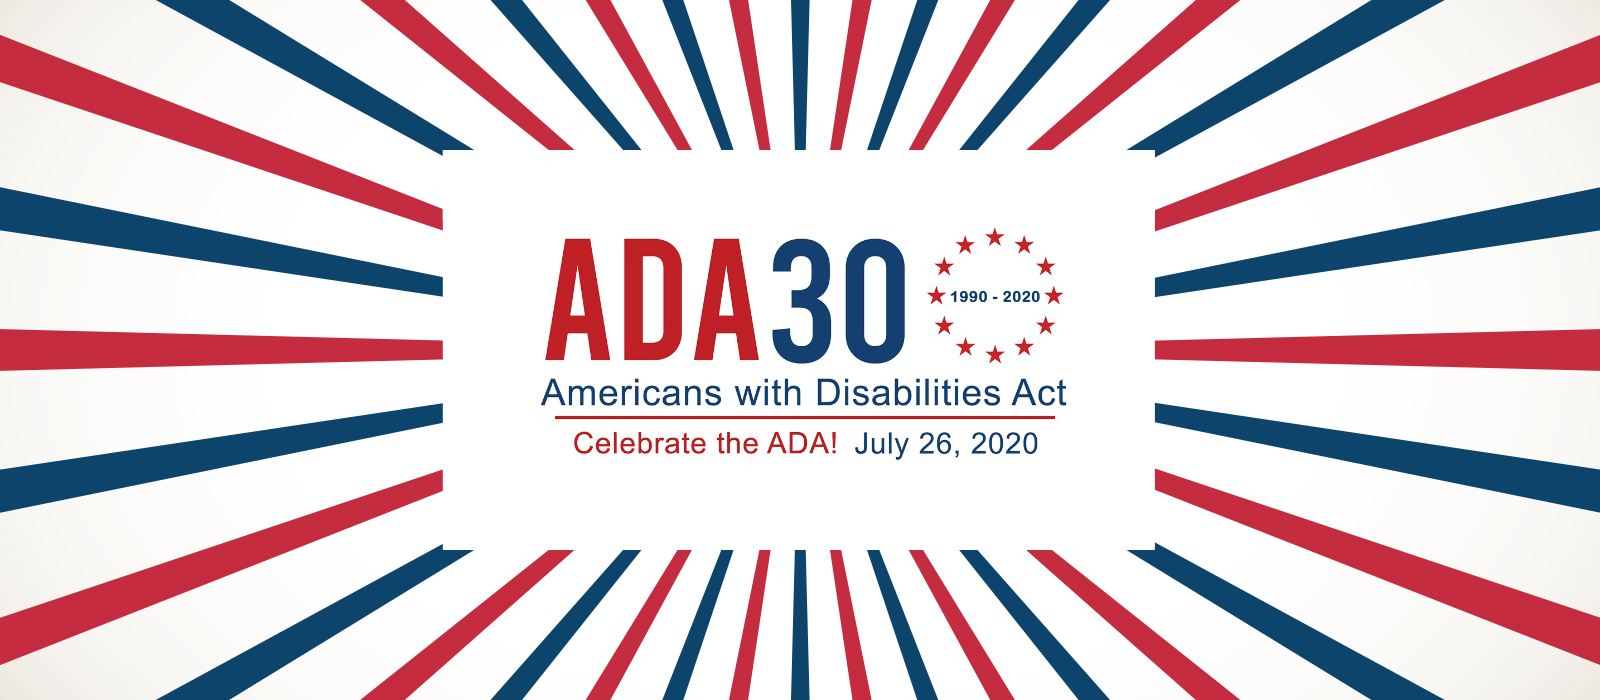 ADA30, Americans with Disabilities Act, Celebrate the ADA! July 26, 2020